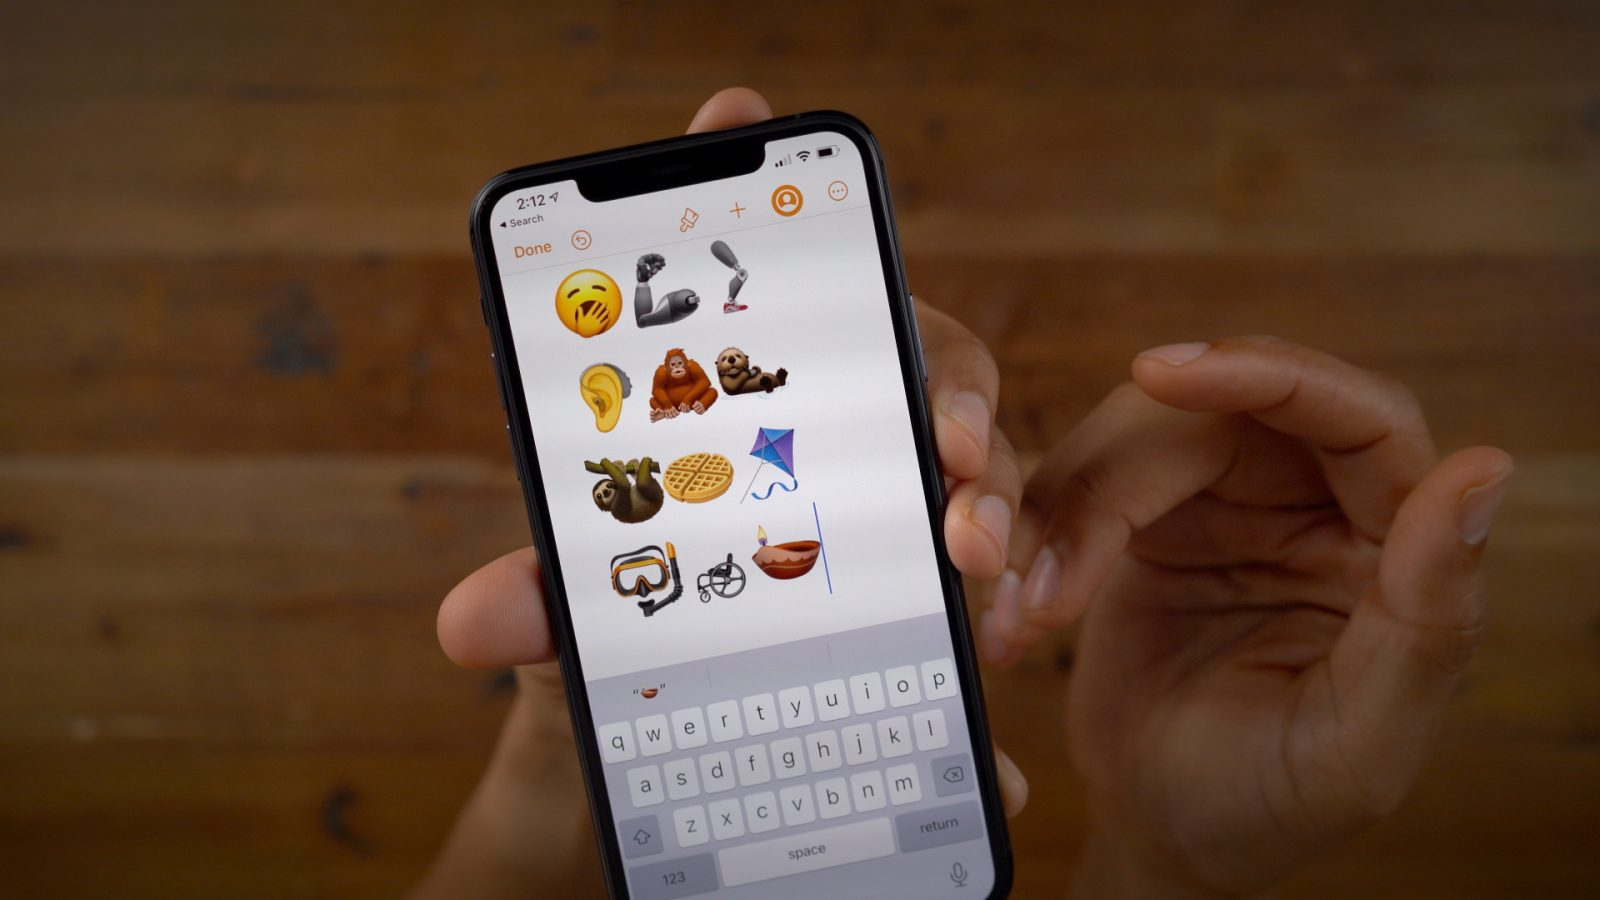 Hands-on with new iOS 13 beta 2 changes and features [Video]